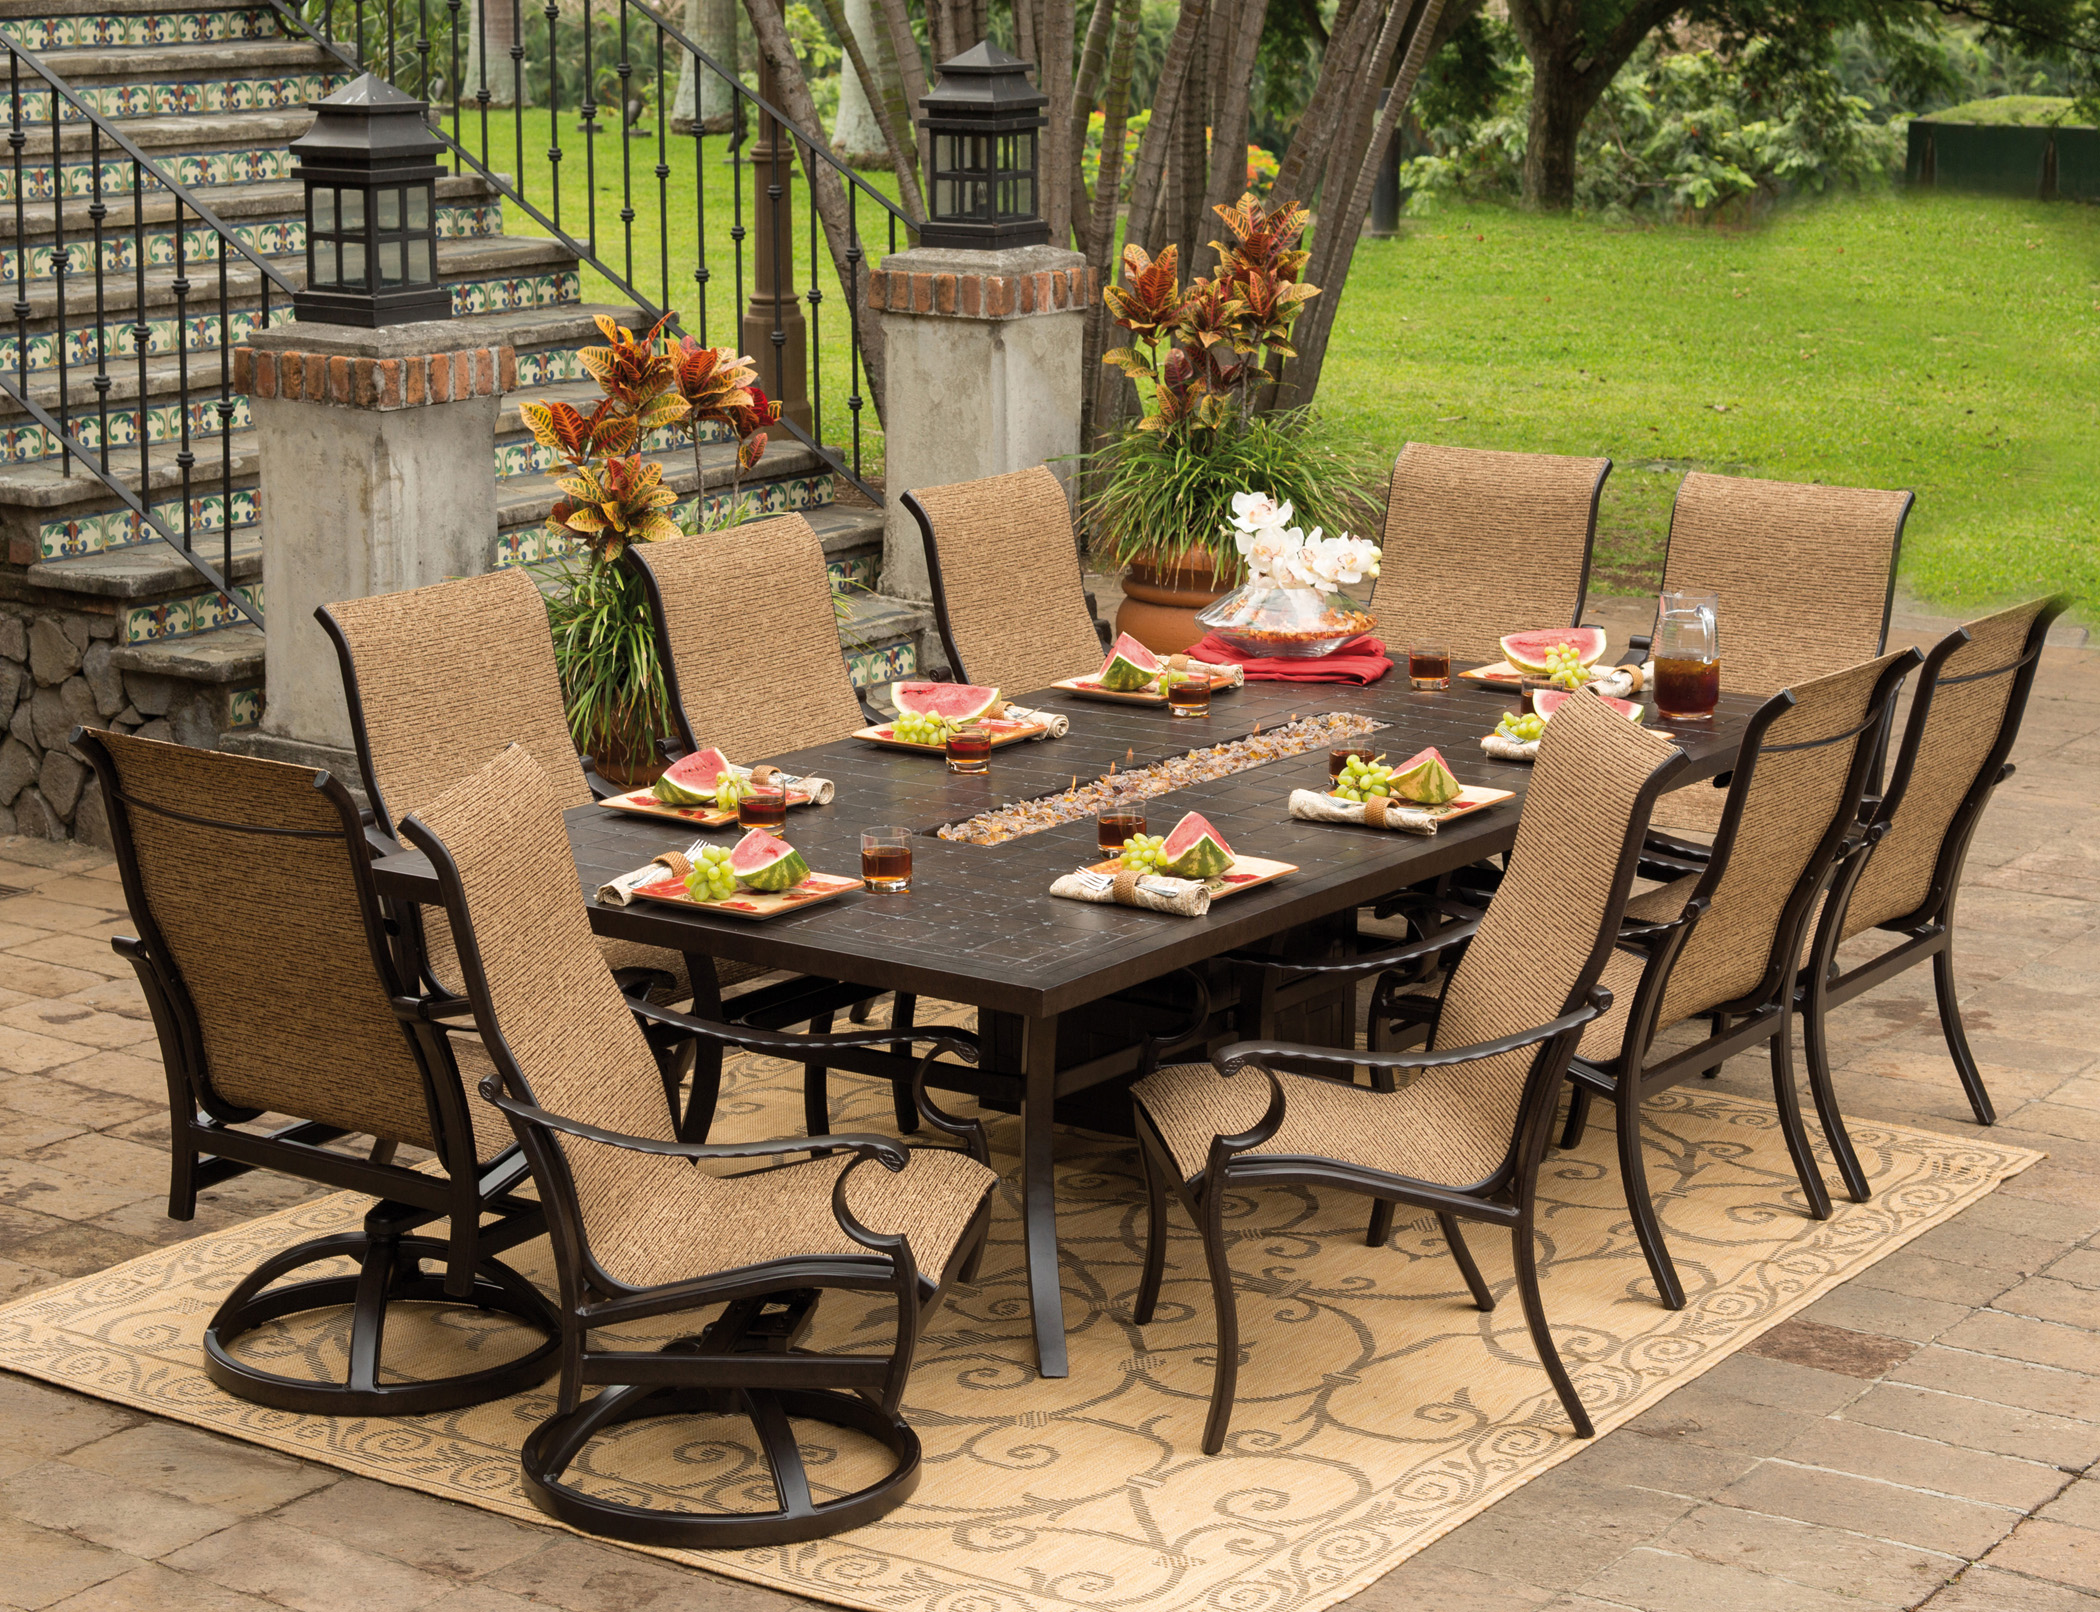 . 18 Fascinating Outdoor Dining Room Design Ideas